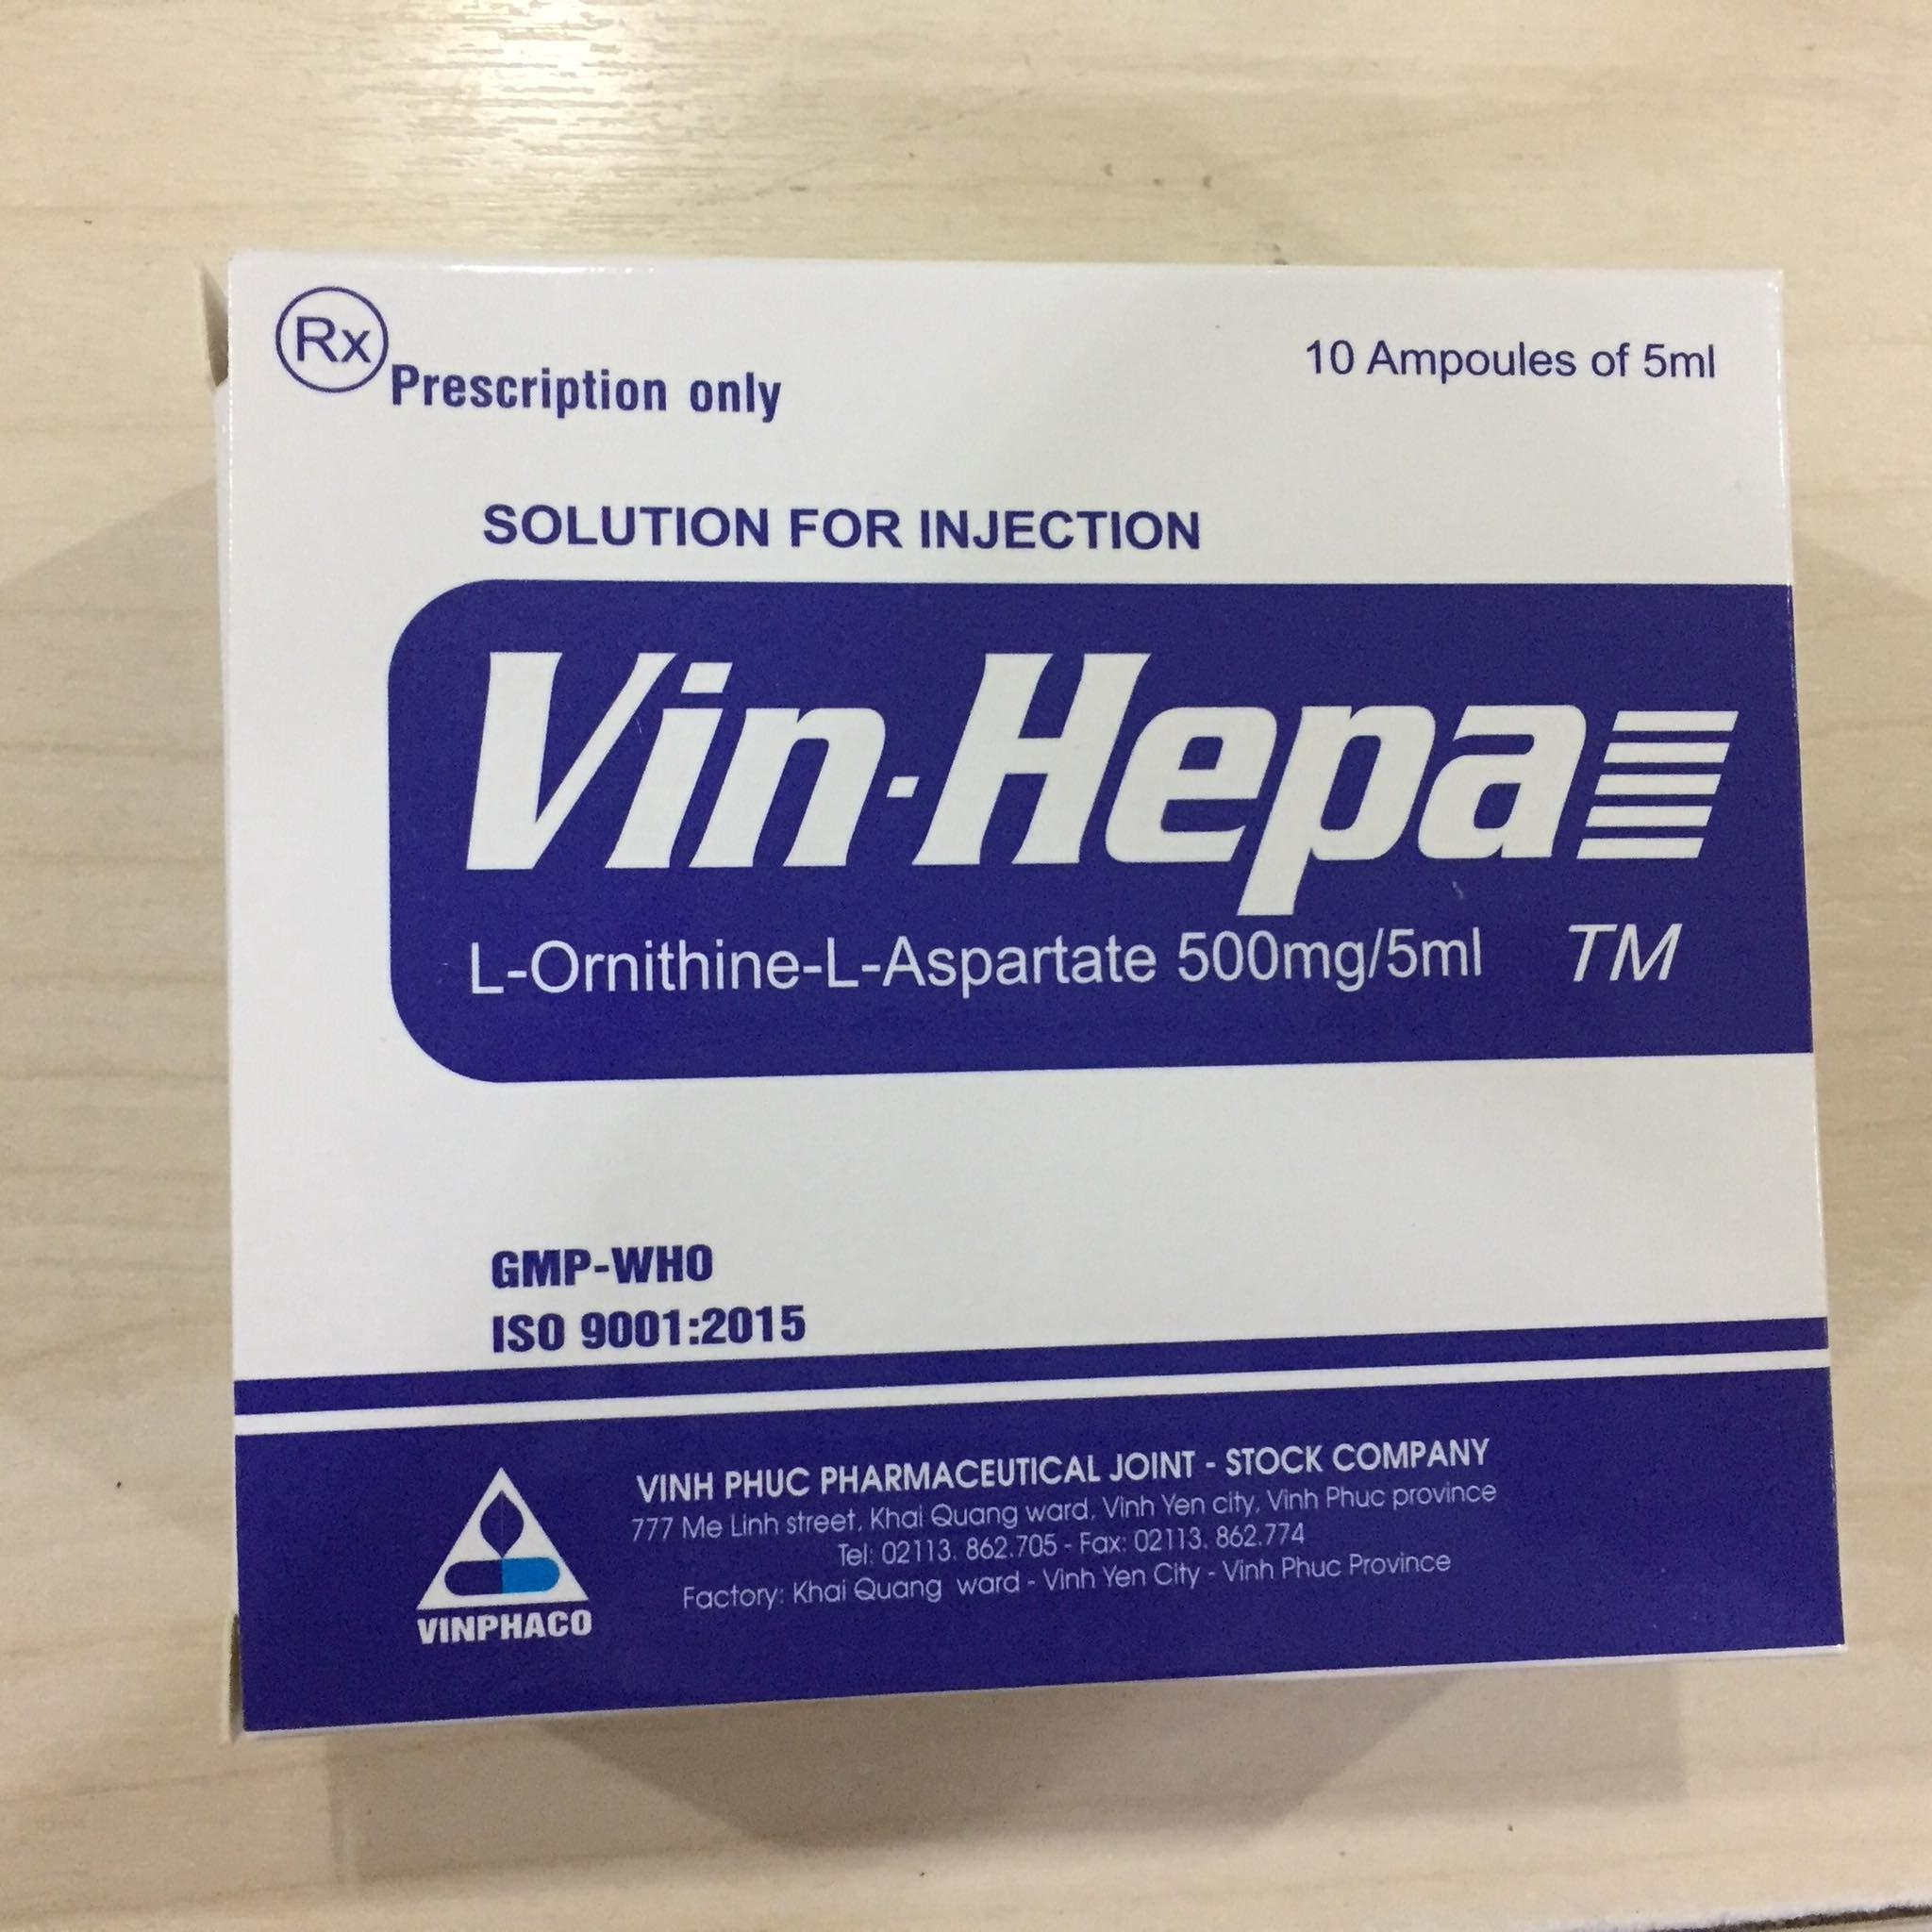 Vin-hepa 500mg/5ml